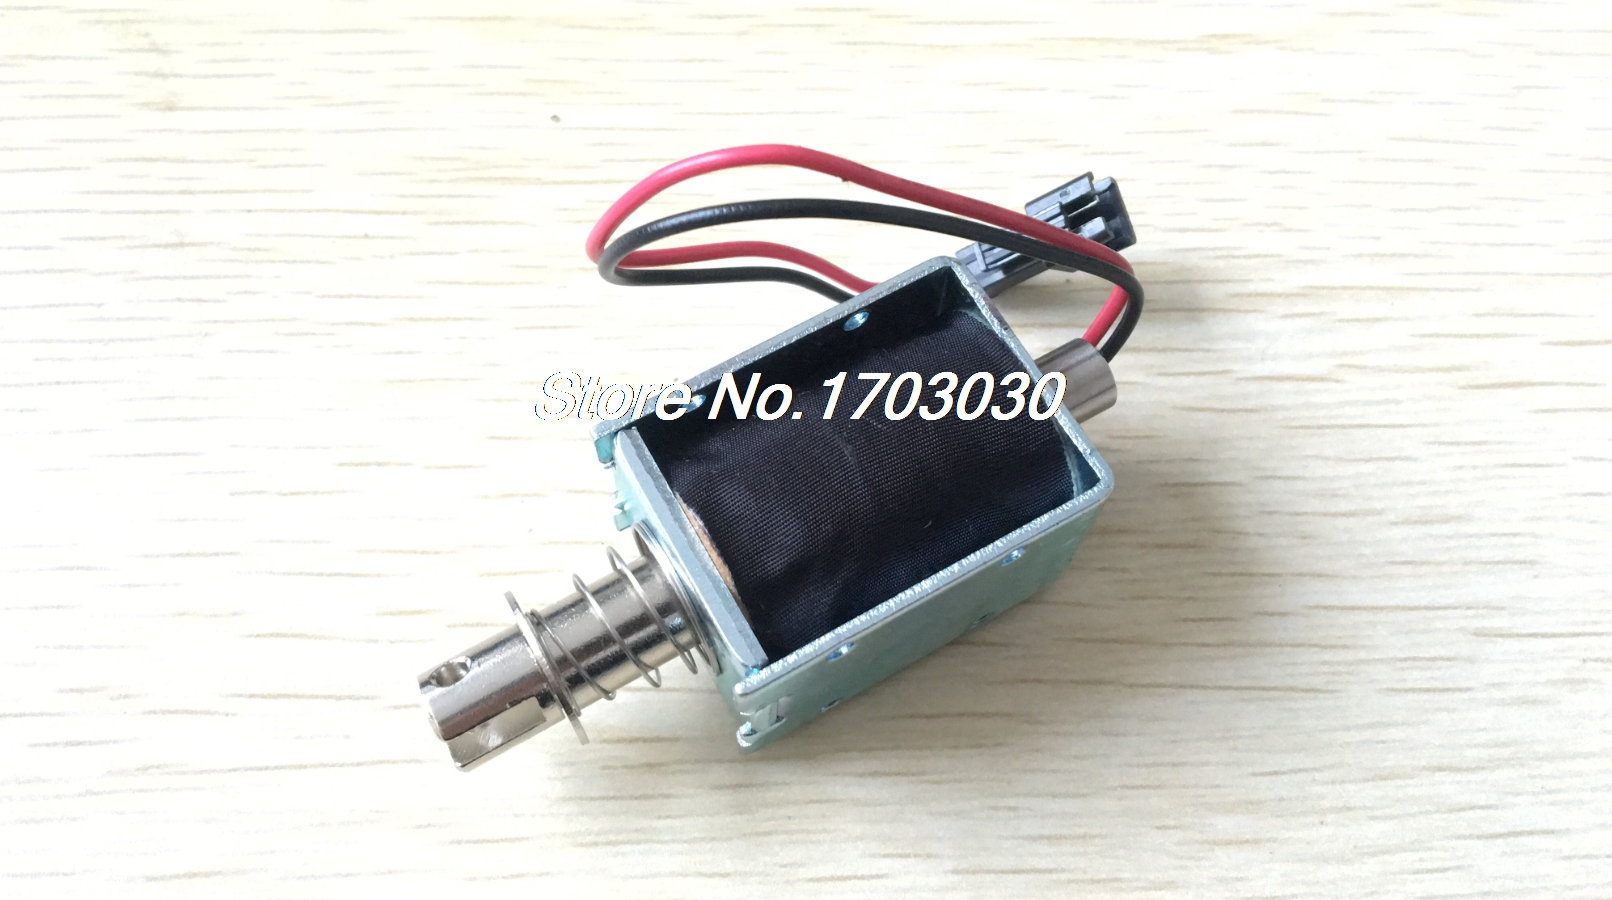 цена на DC 24V 960mA 2.1N 15mm Pull Push Type Open Frame Actuator Solenoid Electromagnet